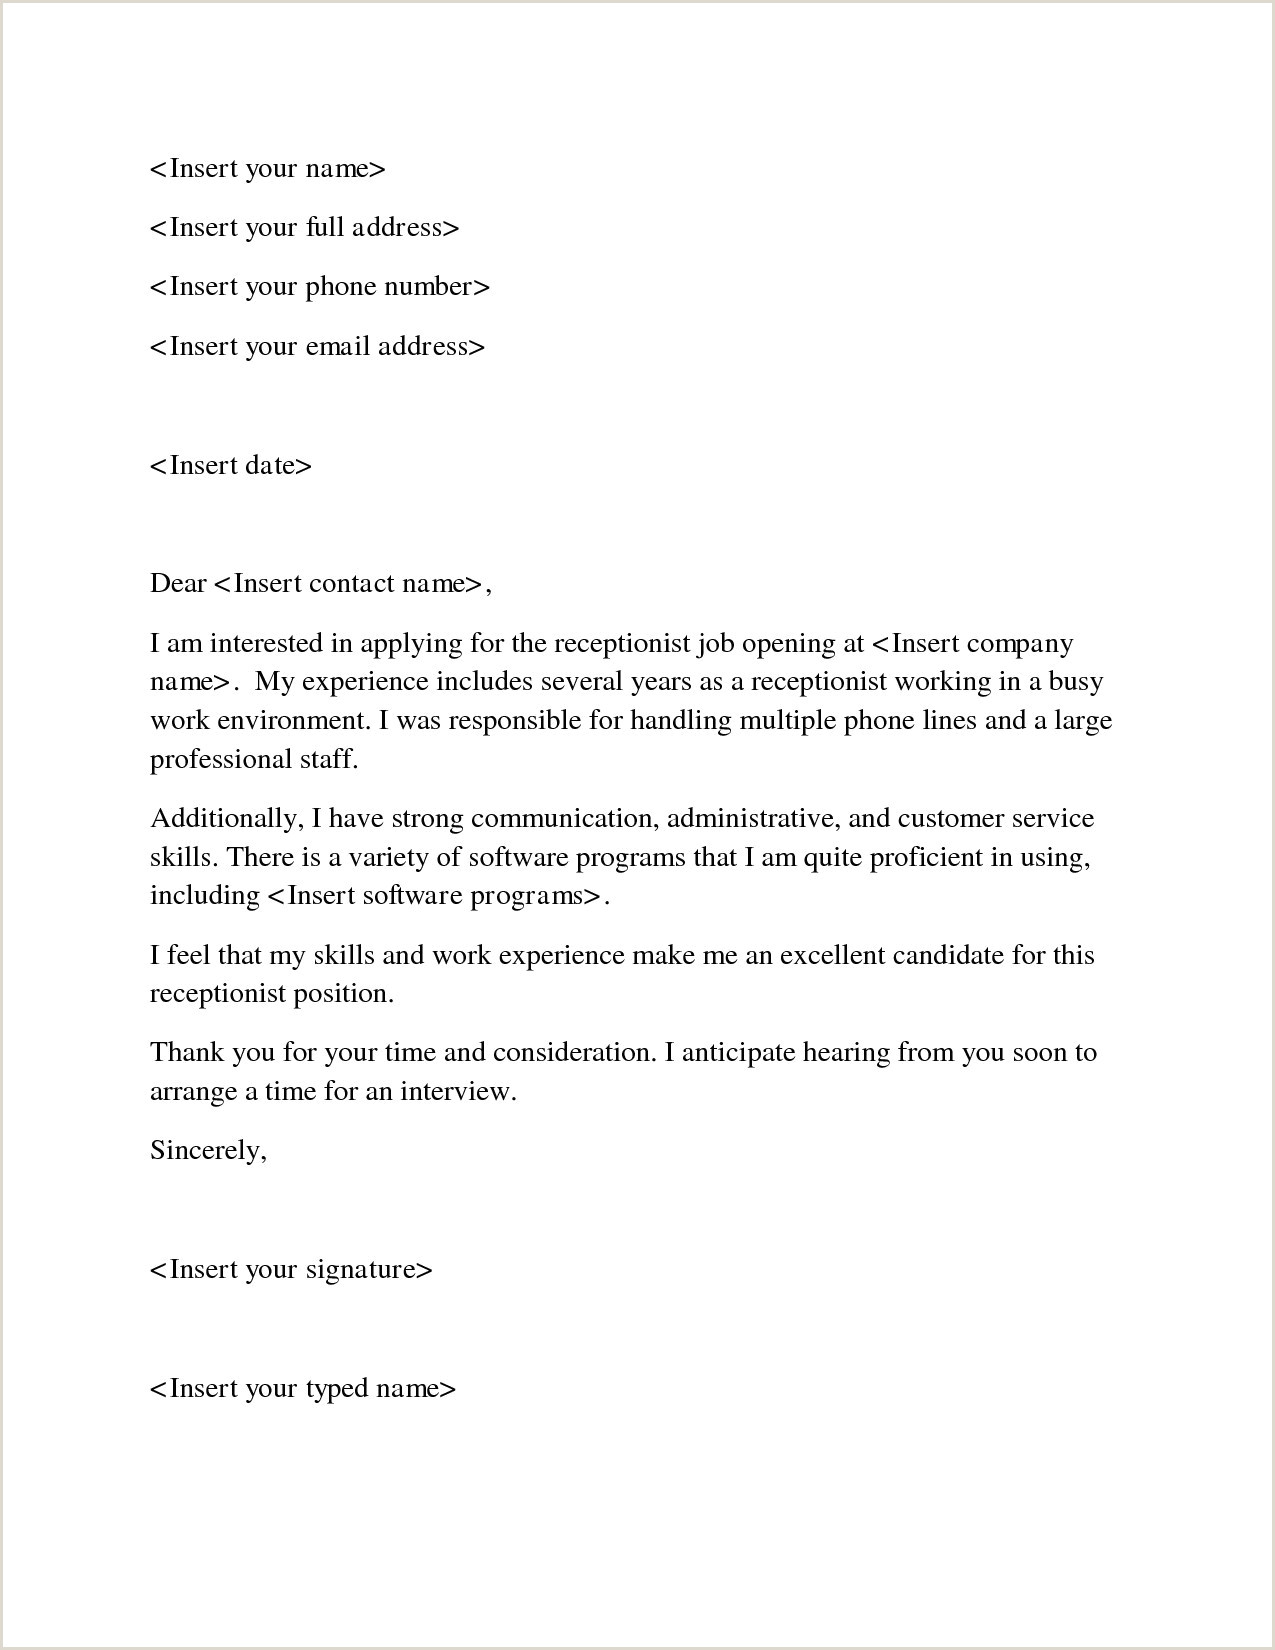 Hair Stylist Cover Letter 9 10 Cover Letter for Hairstylist